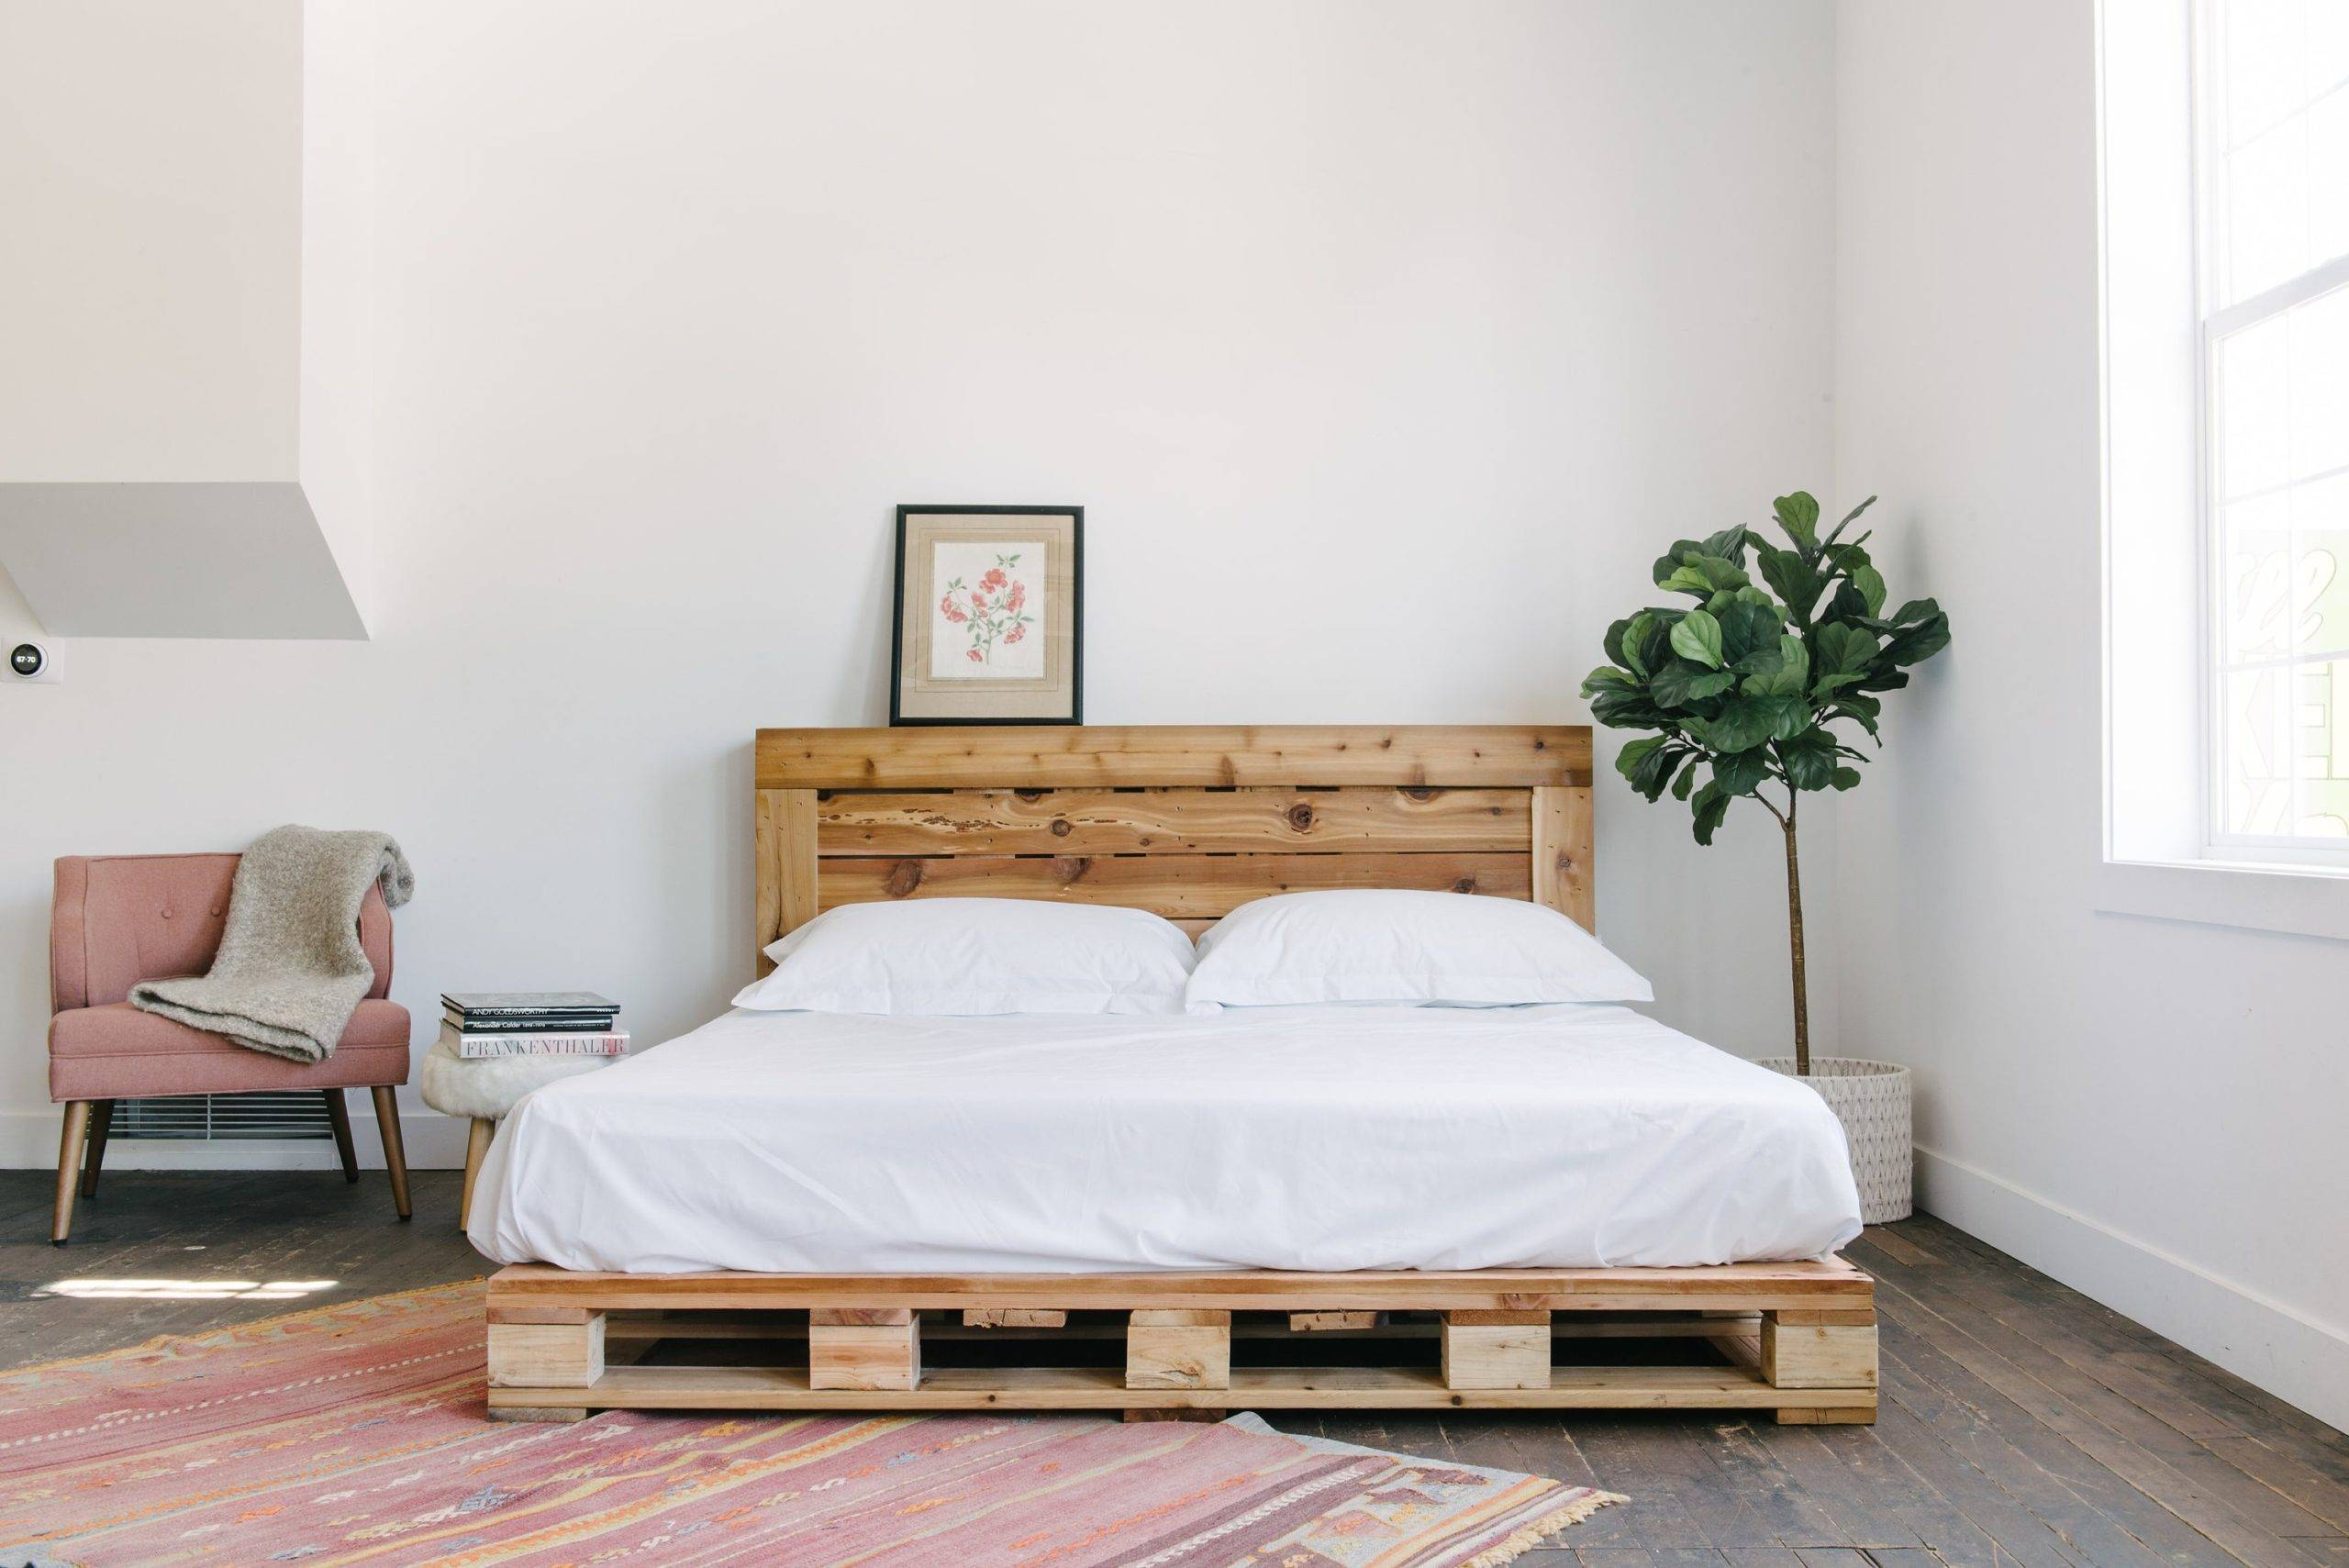 Modern minimalist decor chic pallet board bed frame white bedding